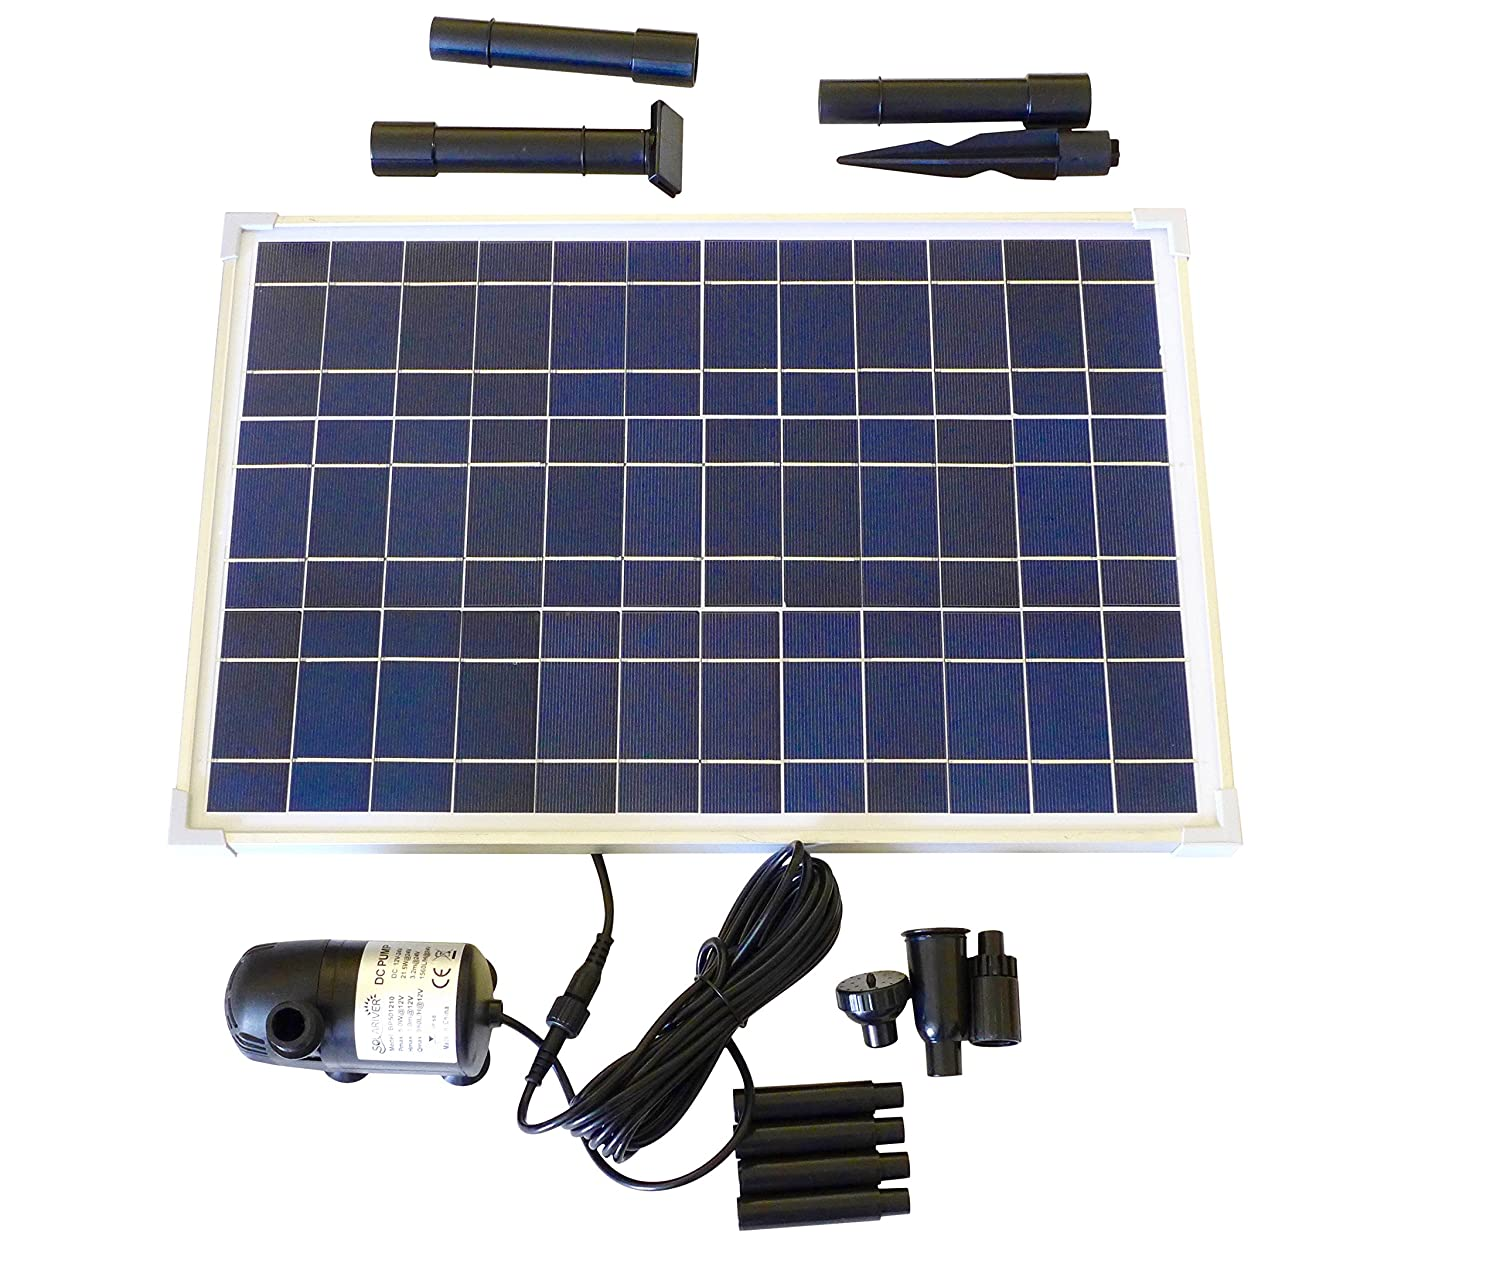 amazoncom solar water pump kit 200gph with 12v submersible water pump and 10 watt solar panel for diy solar powered pond fountain water feature